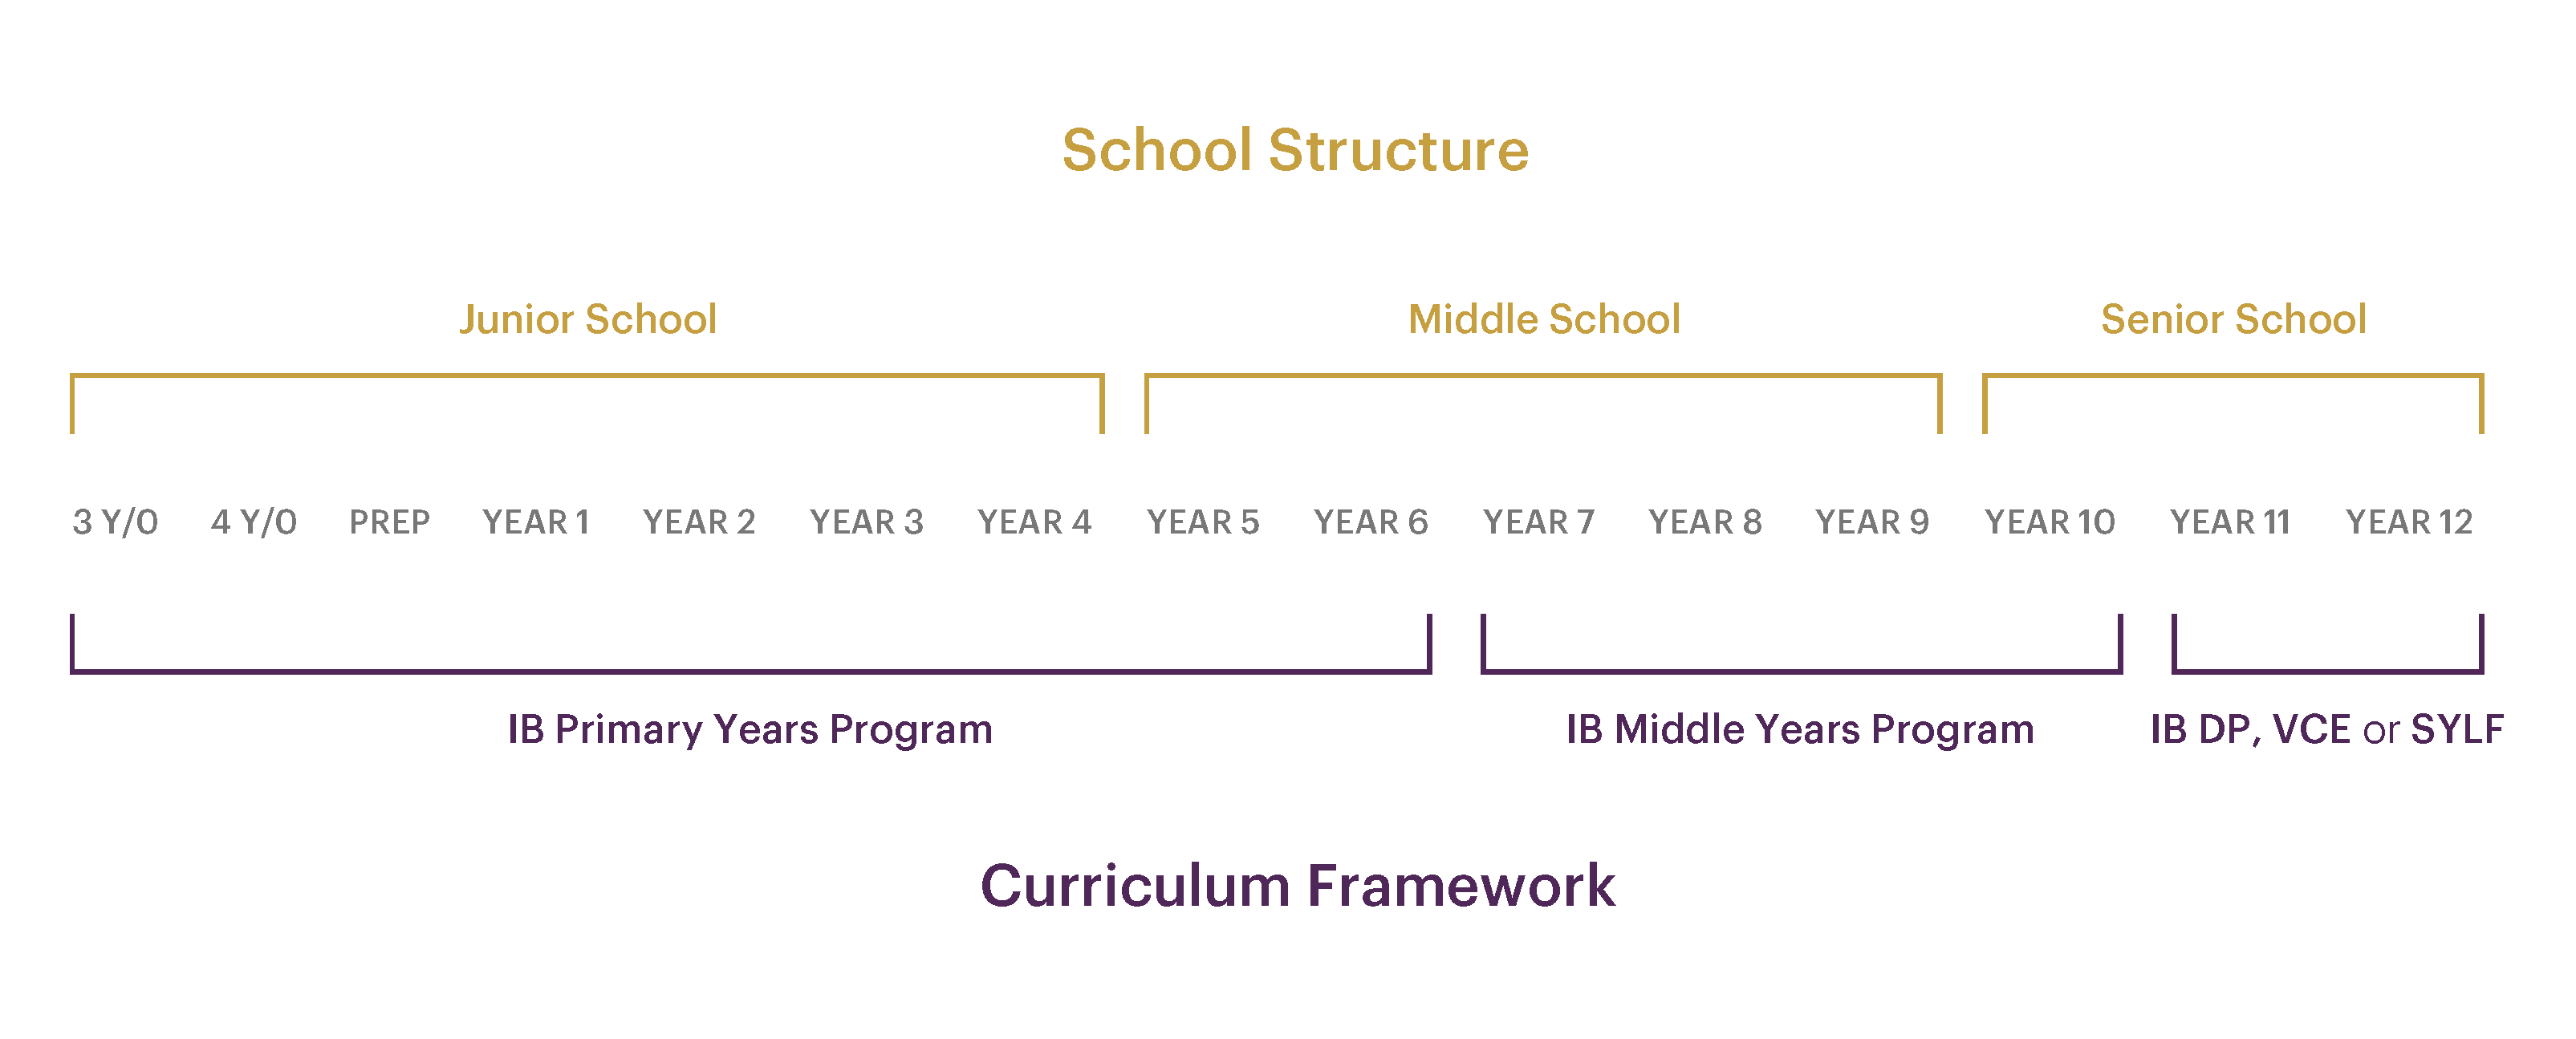 A diagram showing school curriculum over junior, middle and senior school years